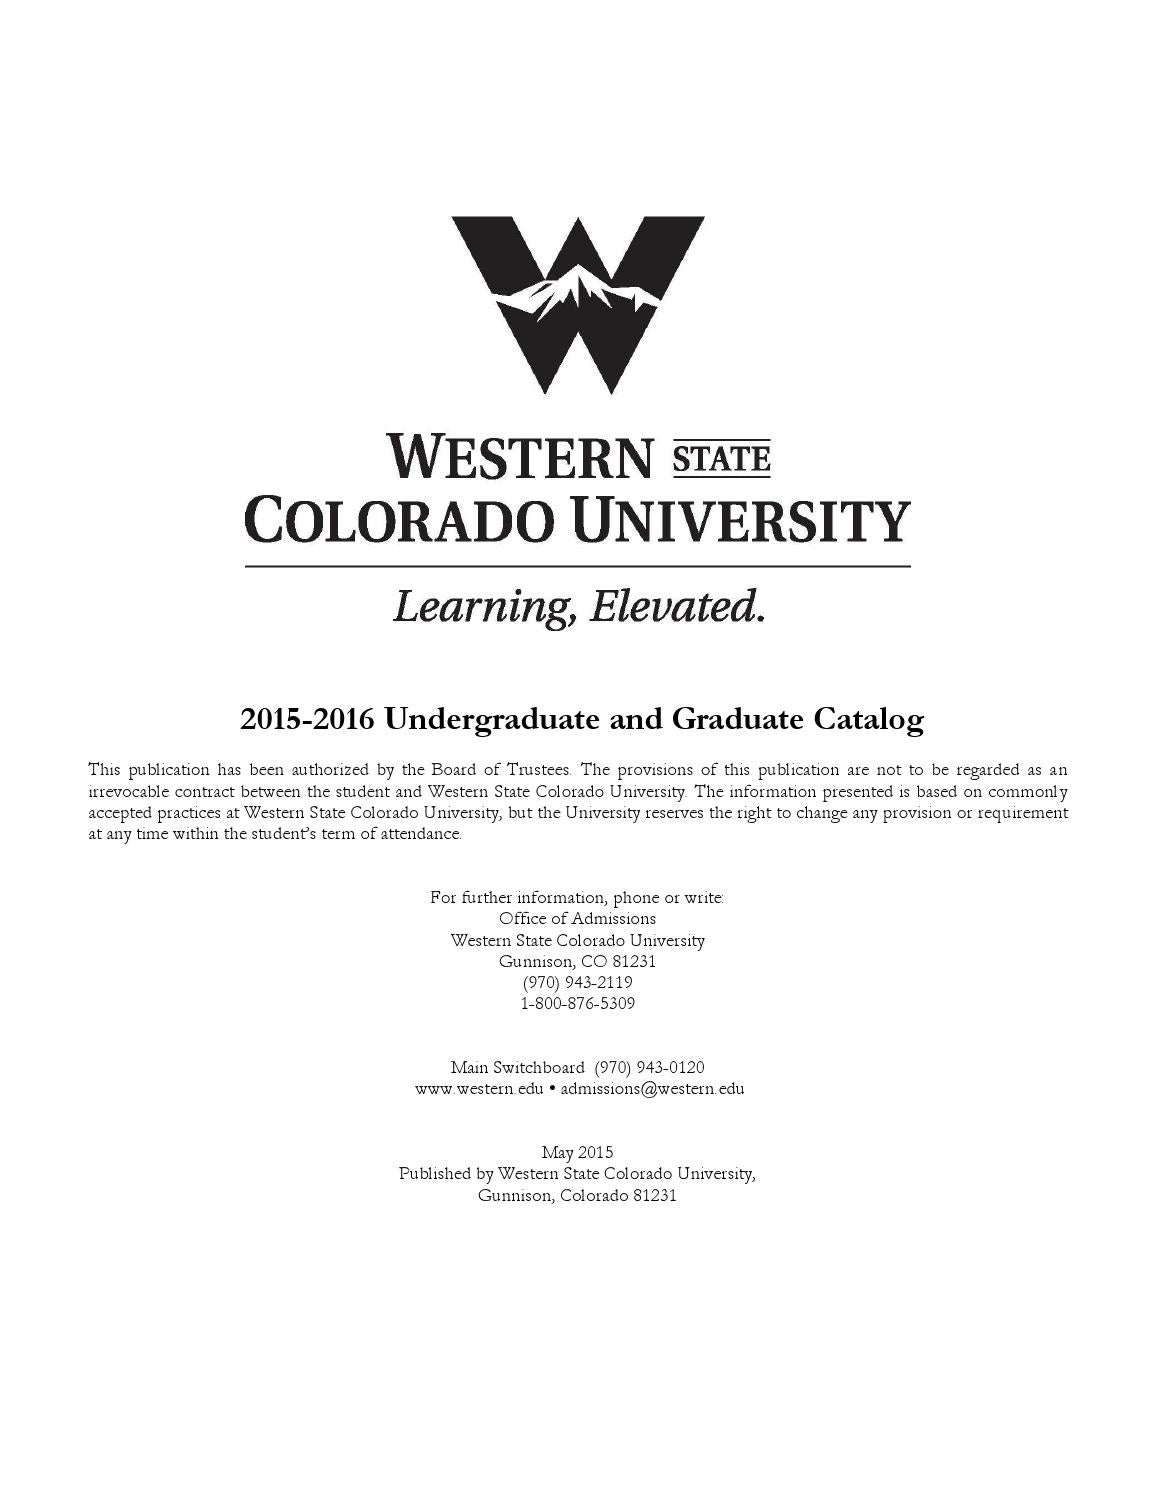 201516 University Catalog For Western State Colorado University By Western  State Colorado University Issuu 201516 University How To Calculate Gpa